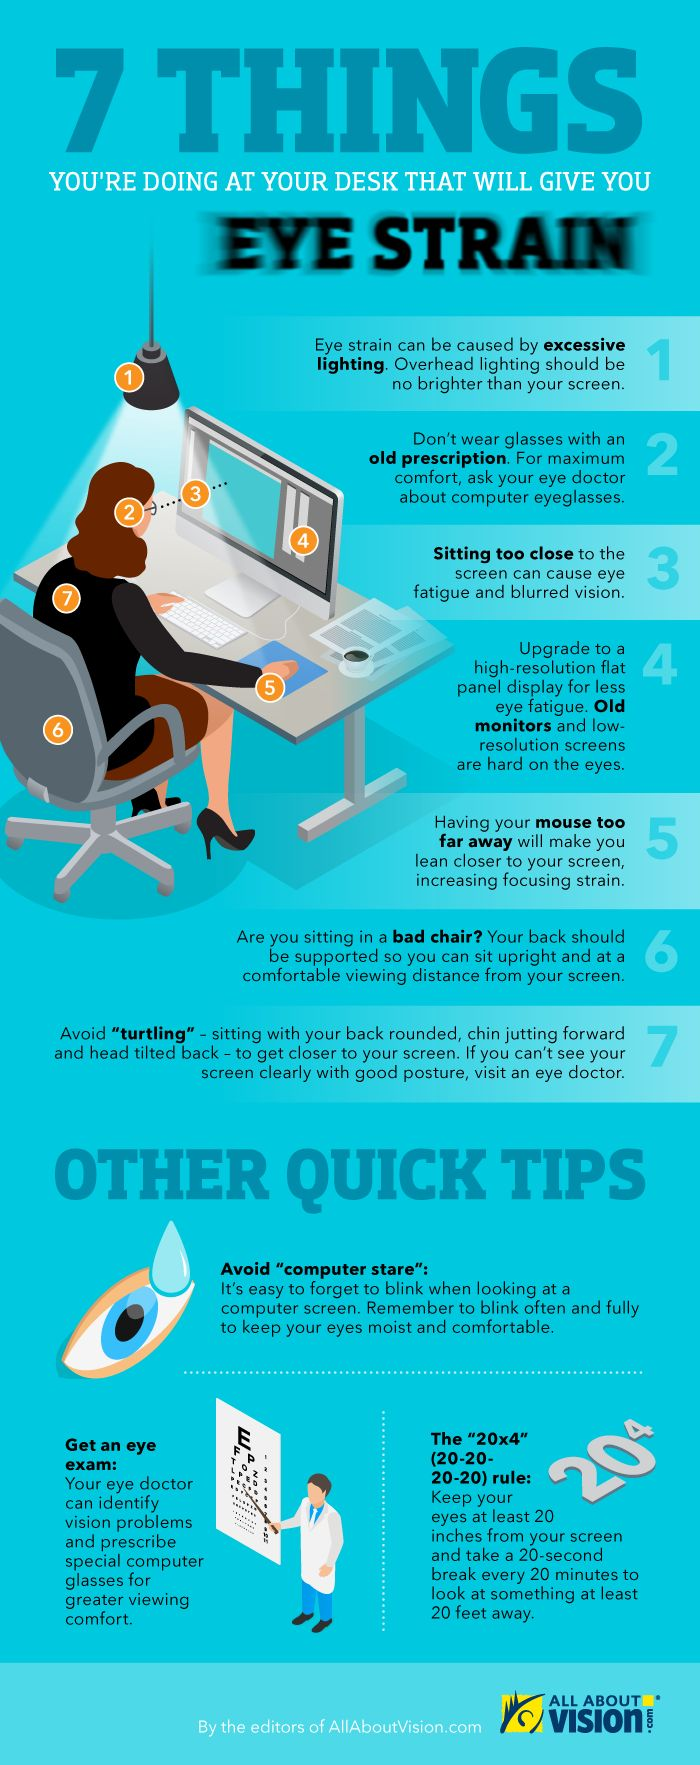 [infographic] Here's a list of 7 things you're doing at your desk that will give you eye strain. Are you guilty of these?